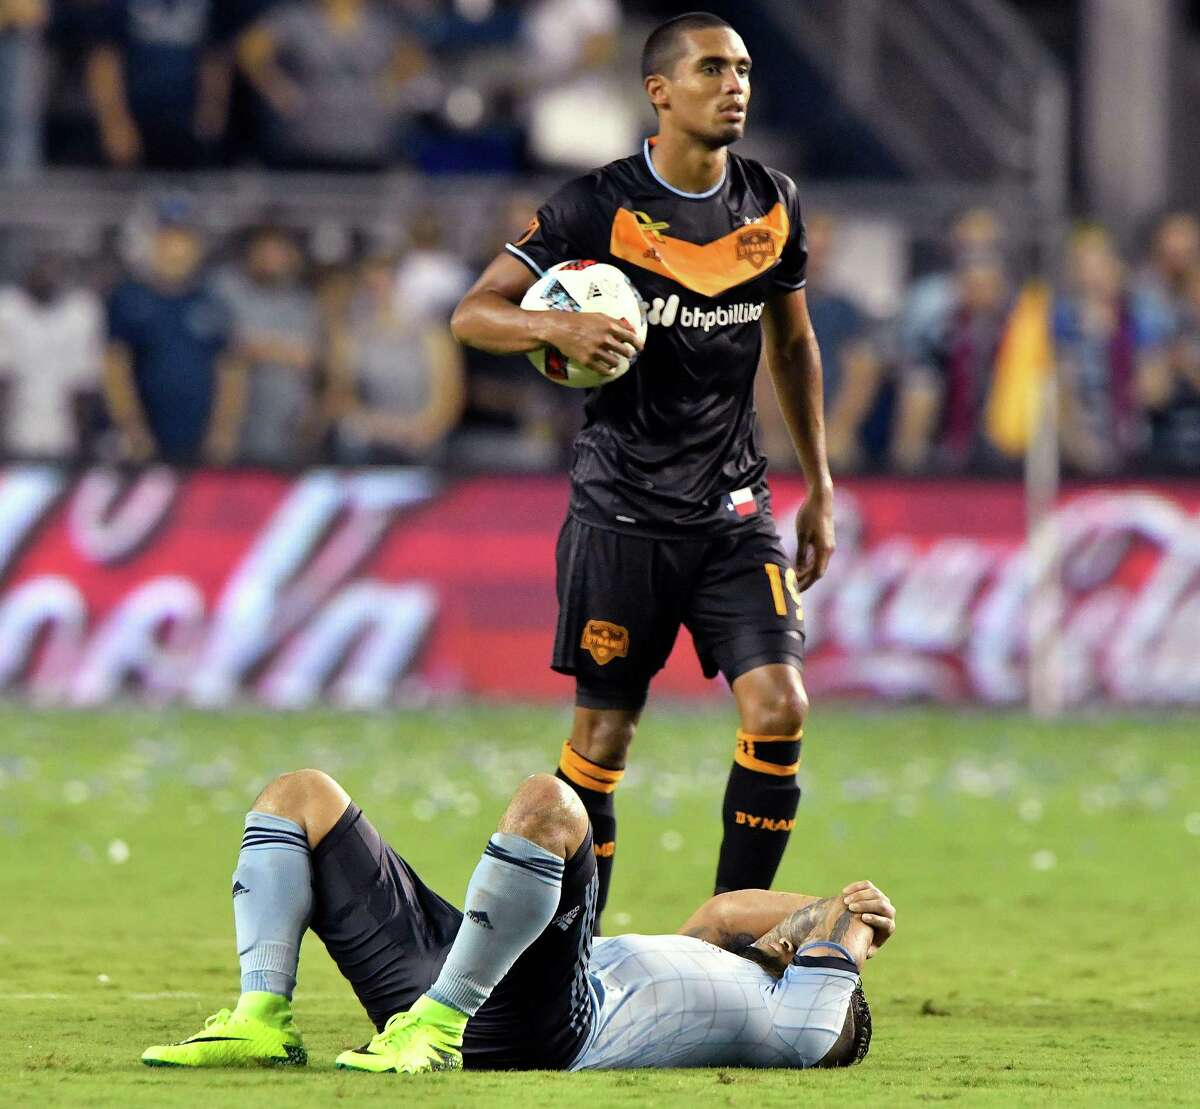 Sporting Kansas City forward Dom Dwyer lays on the ground as Houston Dynamo forward Mauro Manotas walks off the field after the teams played to a 3-3 draw on Friday, Sept. 9, 2016, at Children's Mercy Park in Kansas City, Kan.